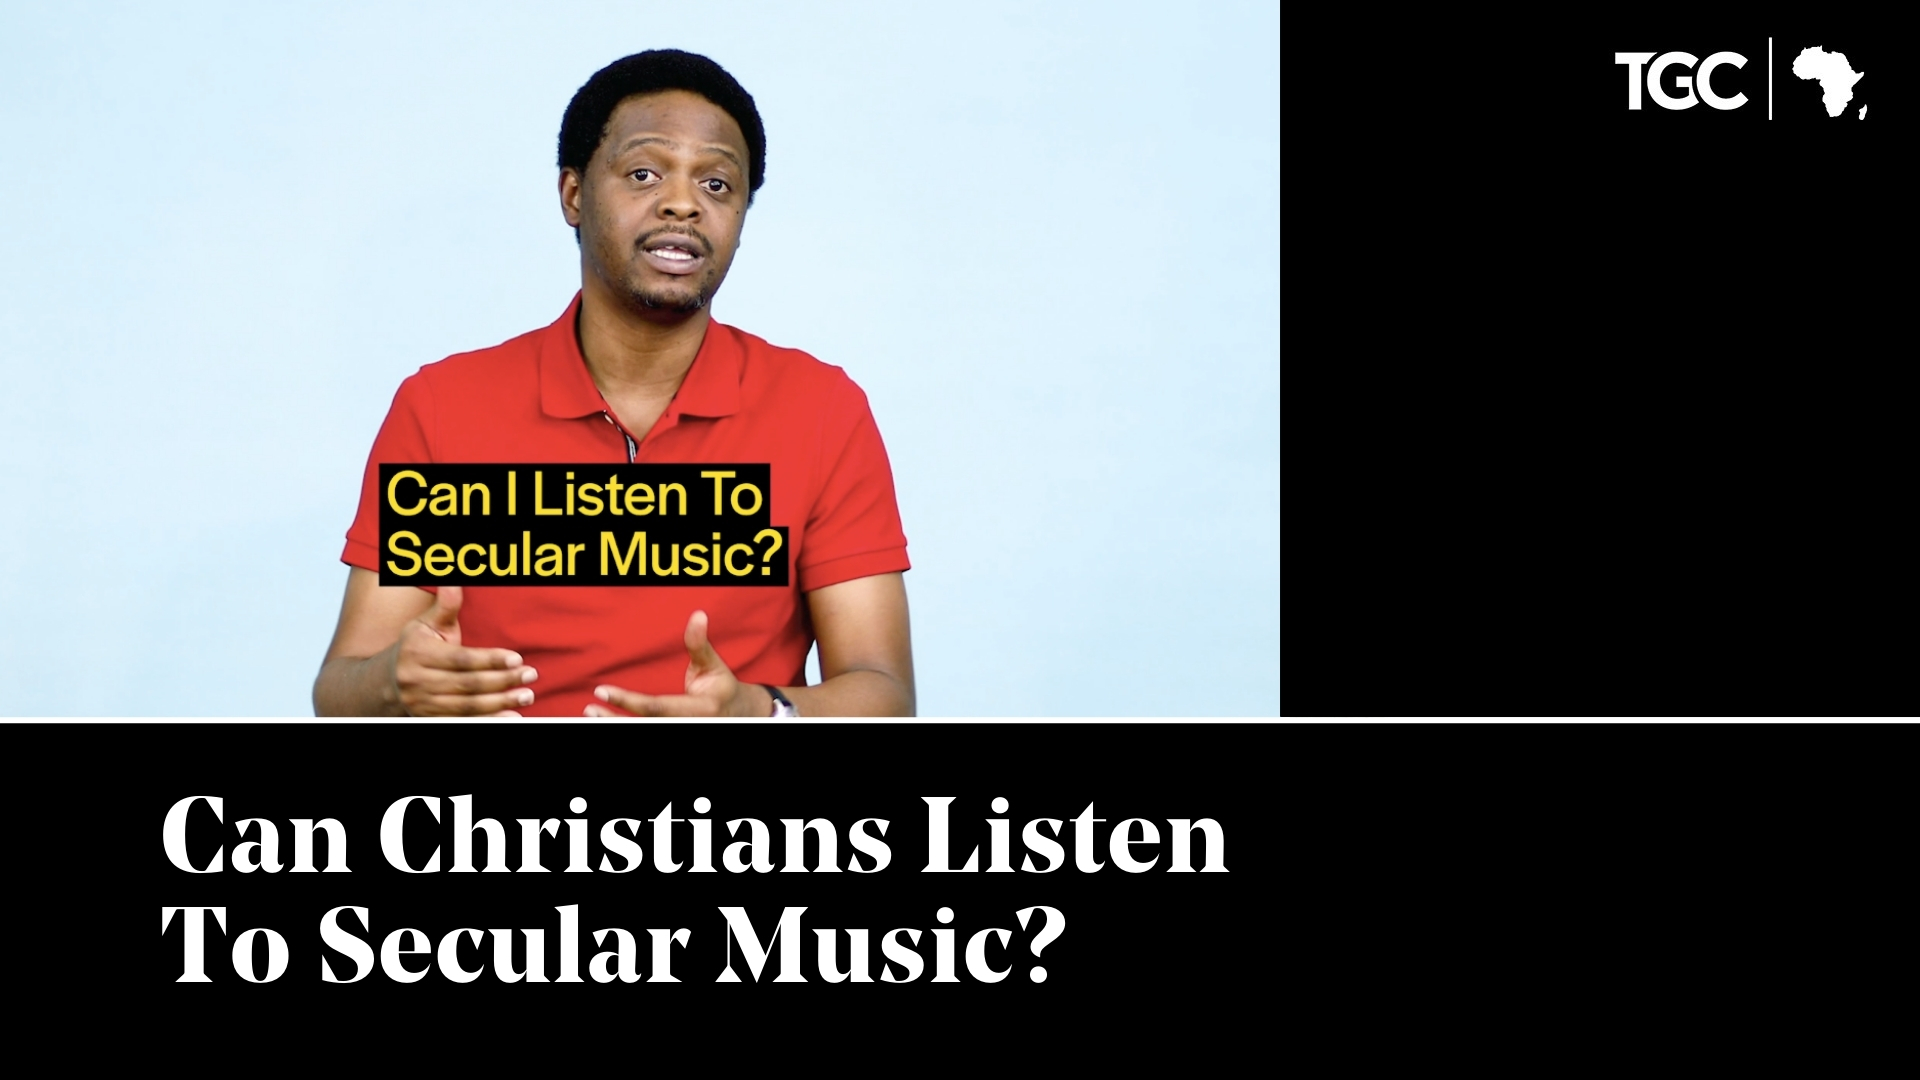 Can Christians Listen to Secular Music video cover - Femi Osunnuyi speaking to camera